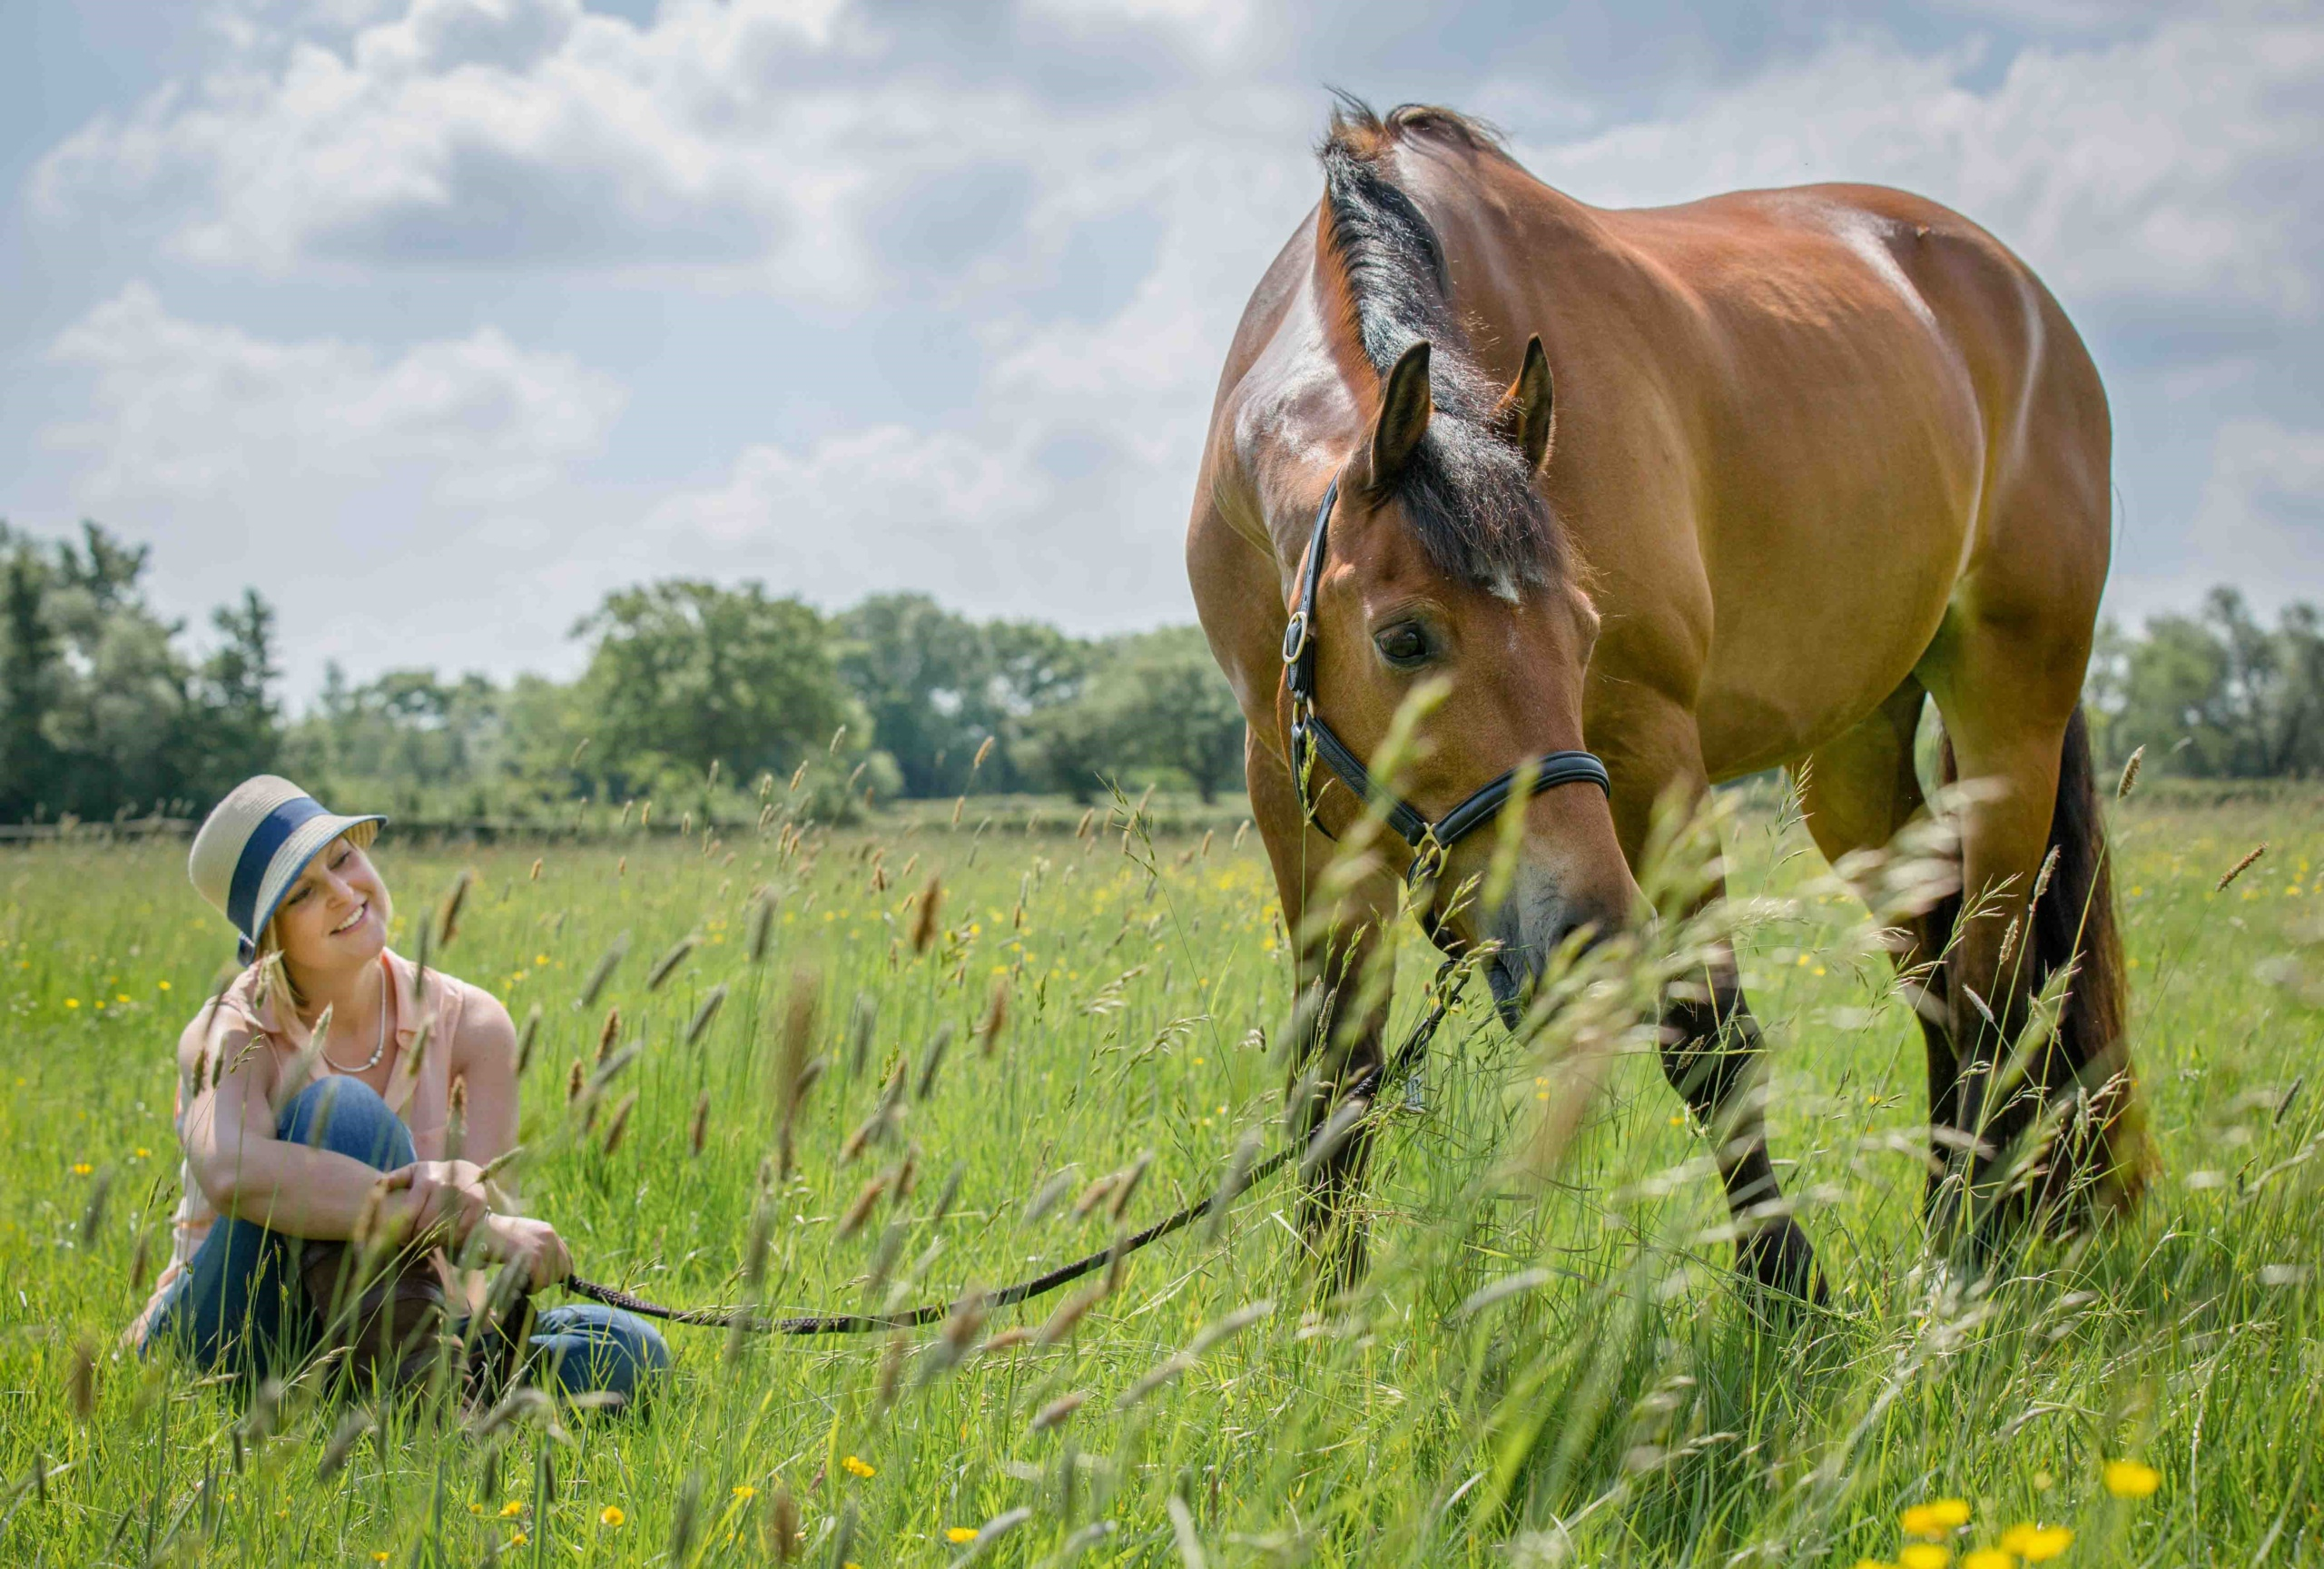 Horse Photography, young woman sat in grassy field holding reins of bay chestnut horse on a sunny day